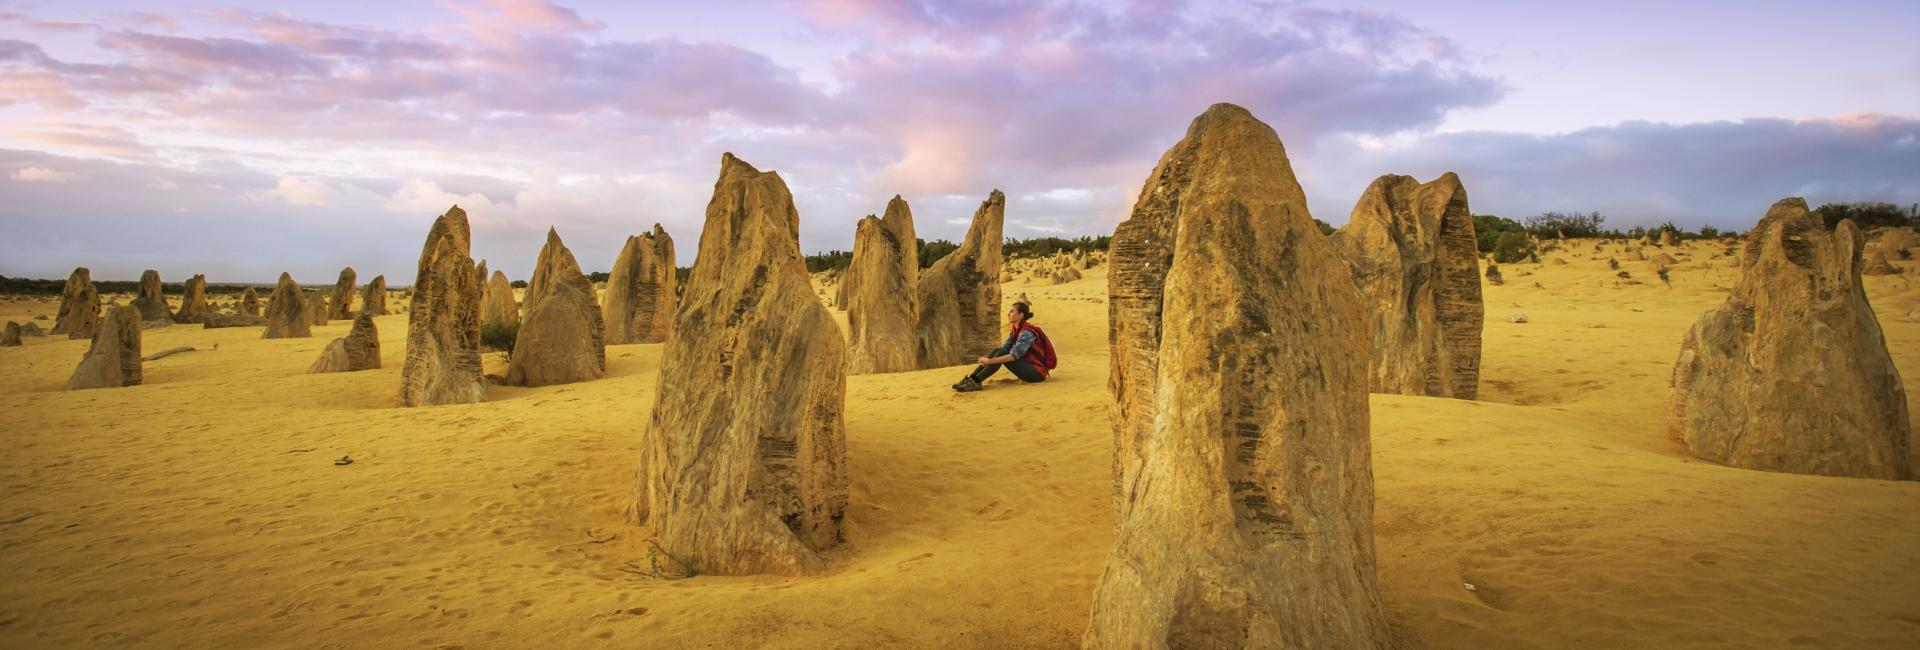 The Pinnacles of Nambung National Park near Cervantes, Western Australia